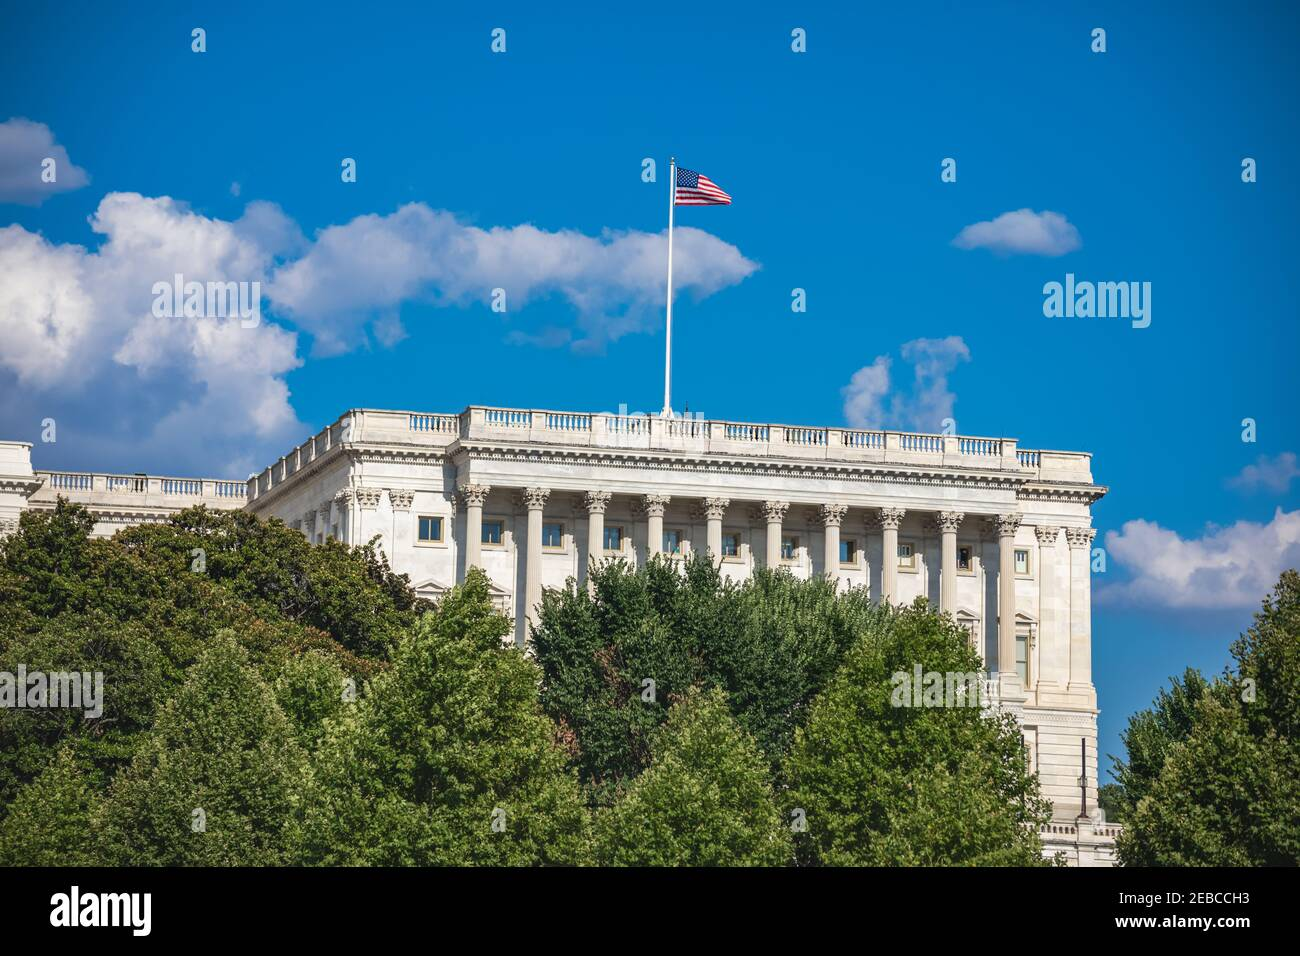 Exterior of the House of Representatives Chamber of the US Capitol building in Washington, DC with an American flag flying overhead Stock Photo